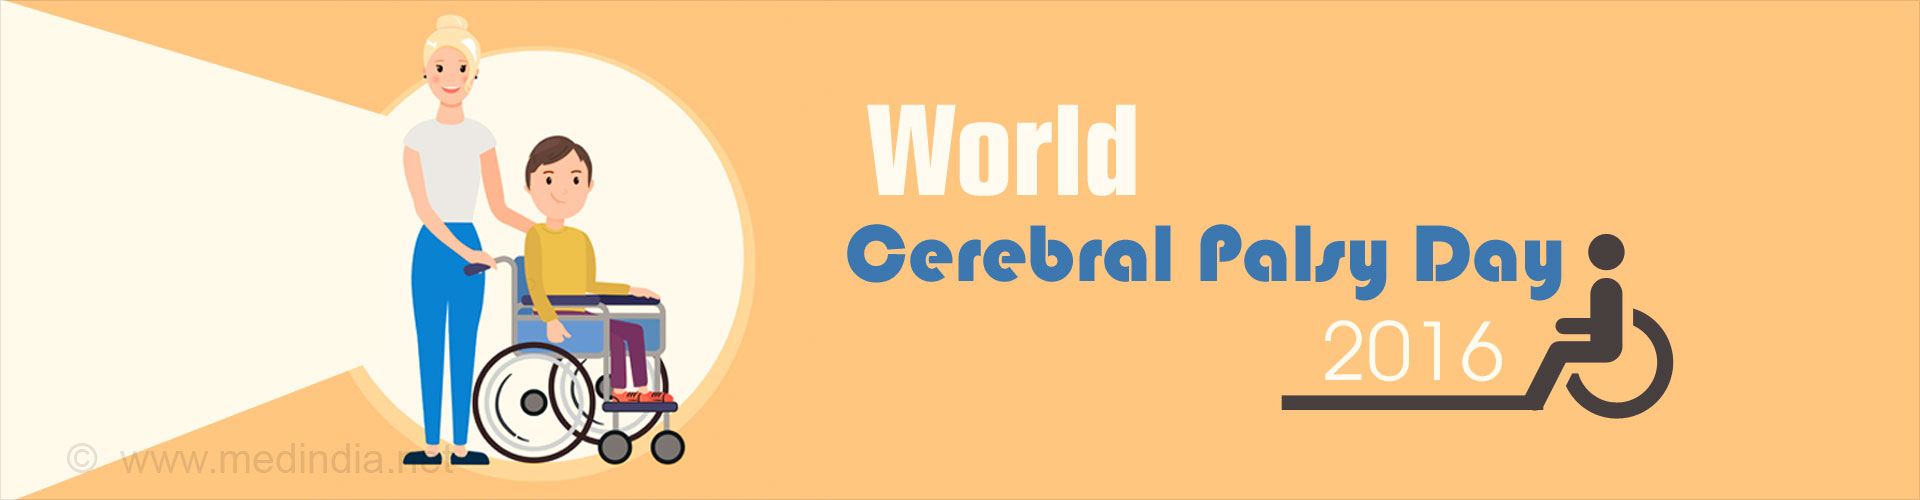 World Cerebral Palsy Day 2016